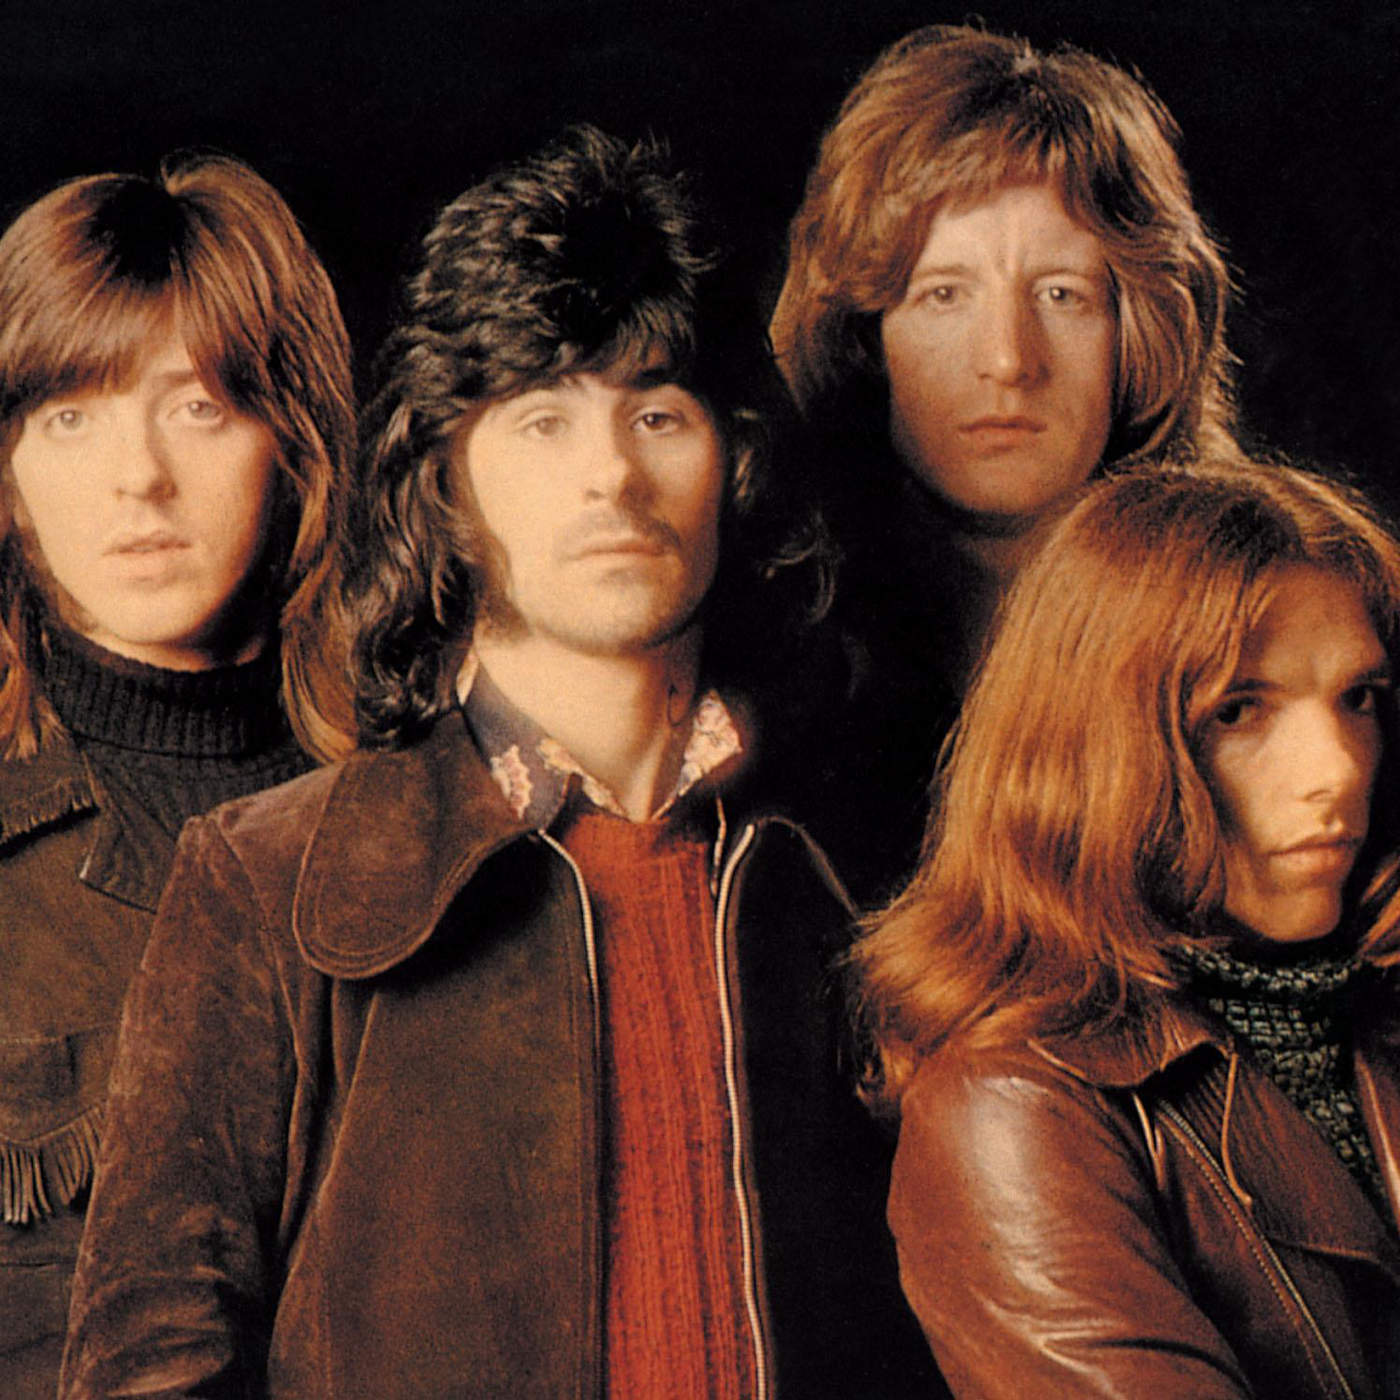 Art for Day After Day by Badfinger